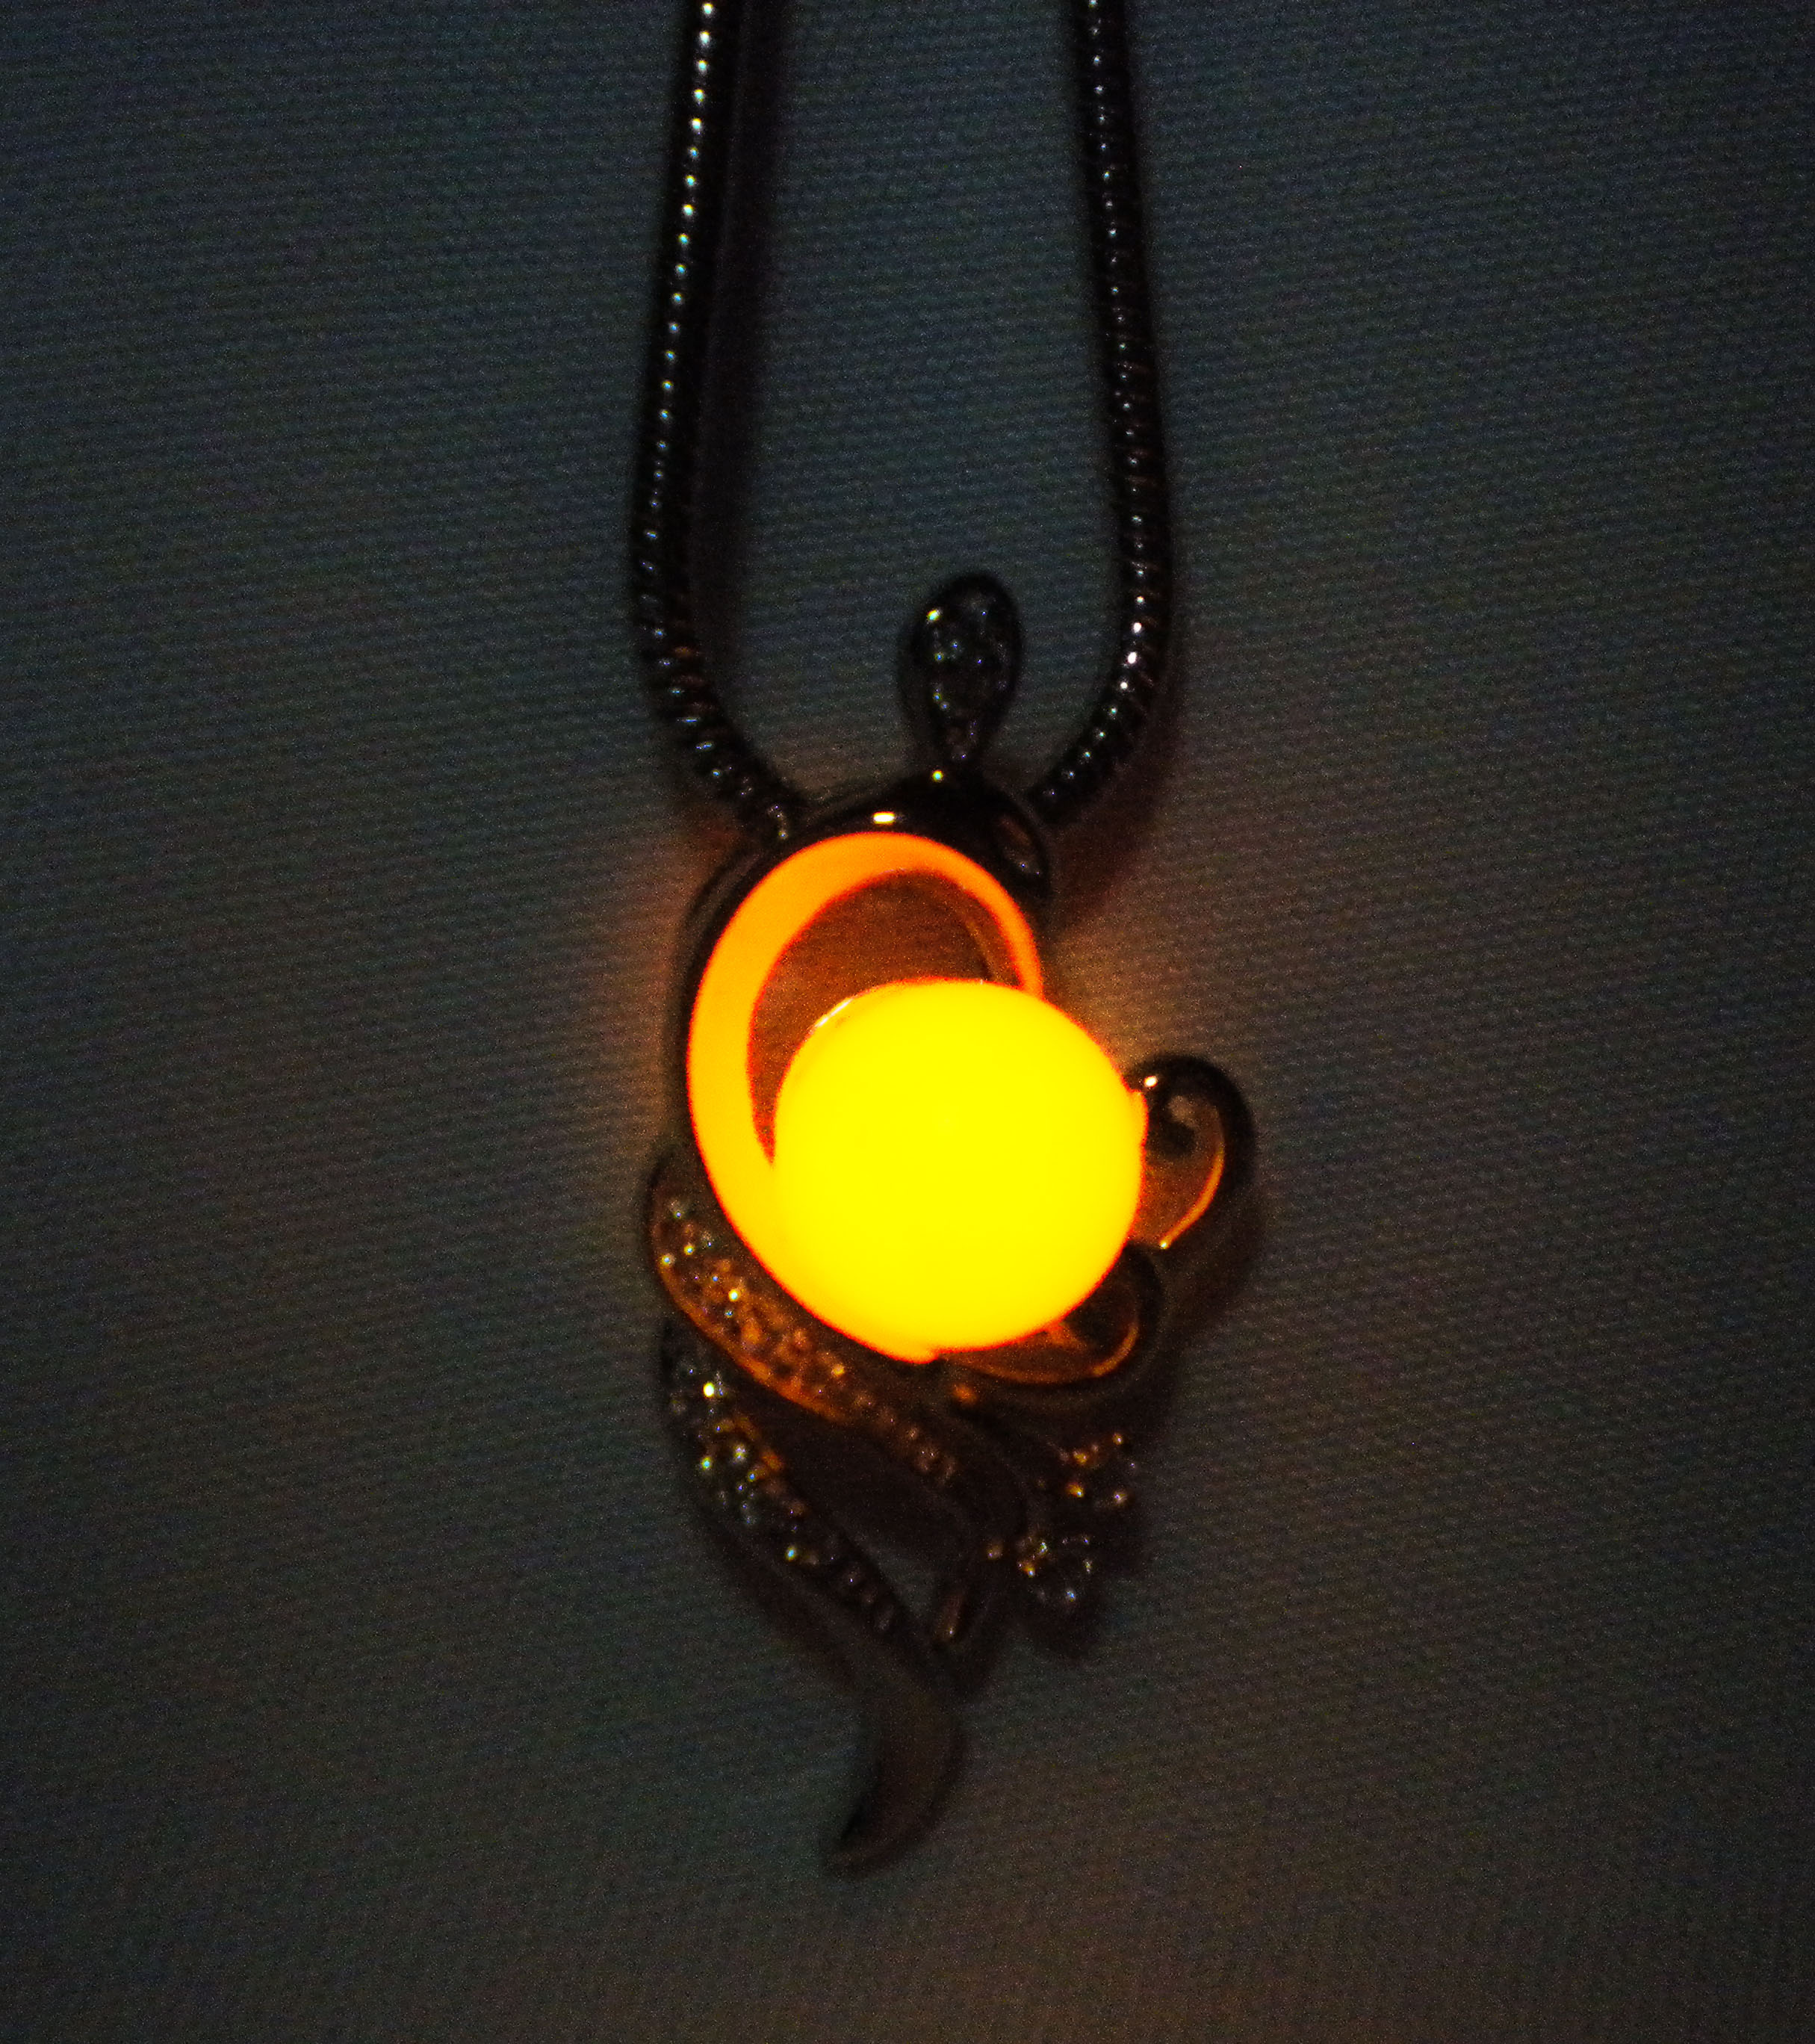 ac the mixi necklace glow dark handmade necklacedragon dragon img in af product